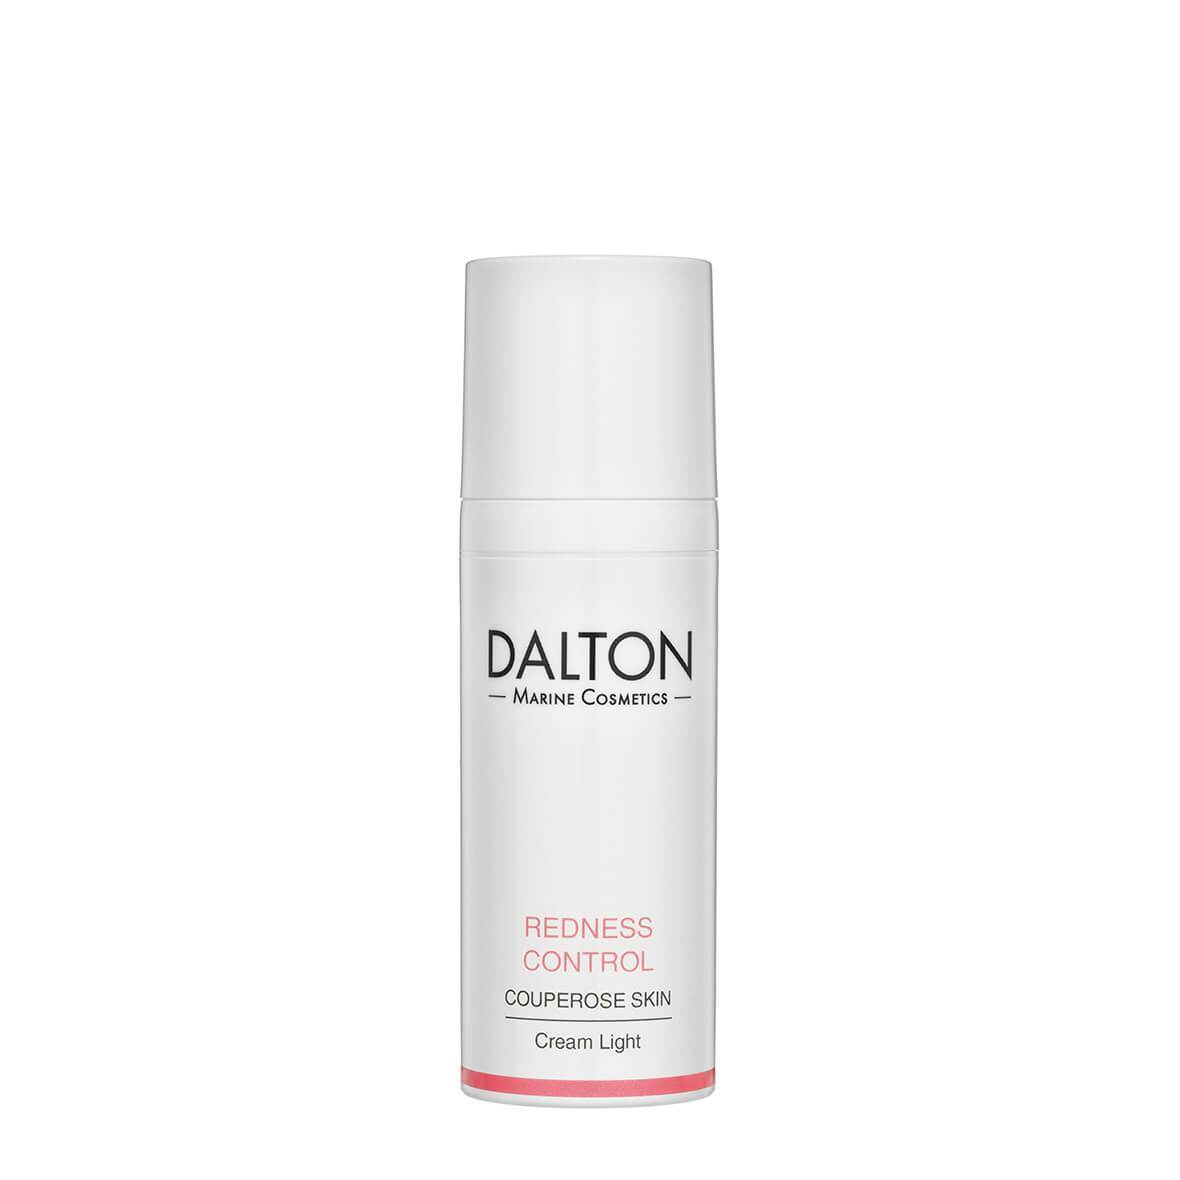 Cremă, Redness Cream Light 50 ml., Dalton Marine Cosmetics, Era Cosmetics